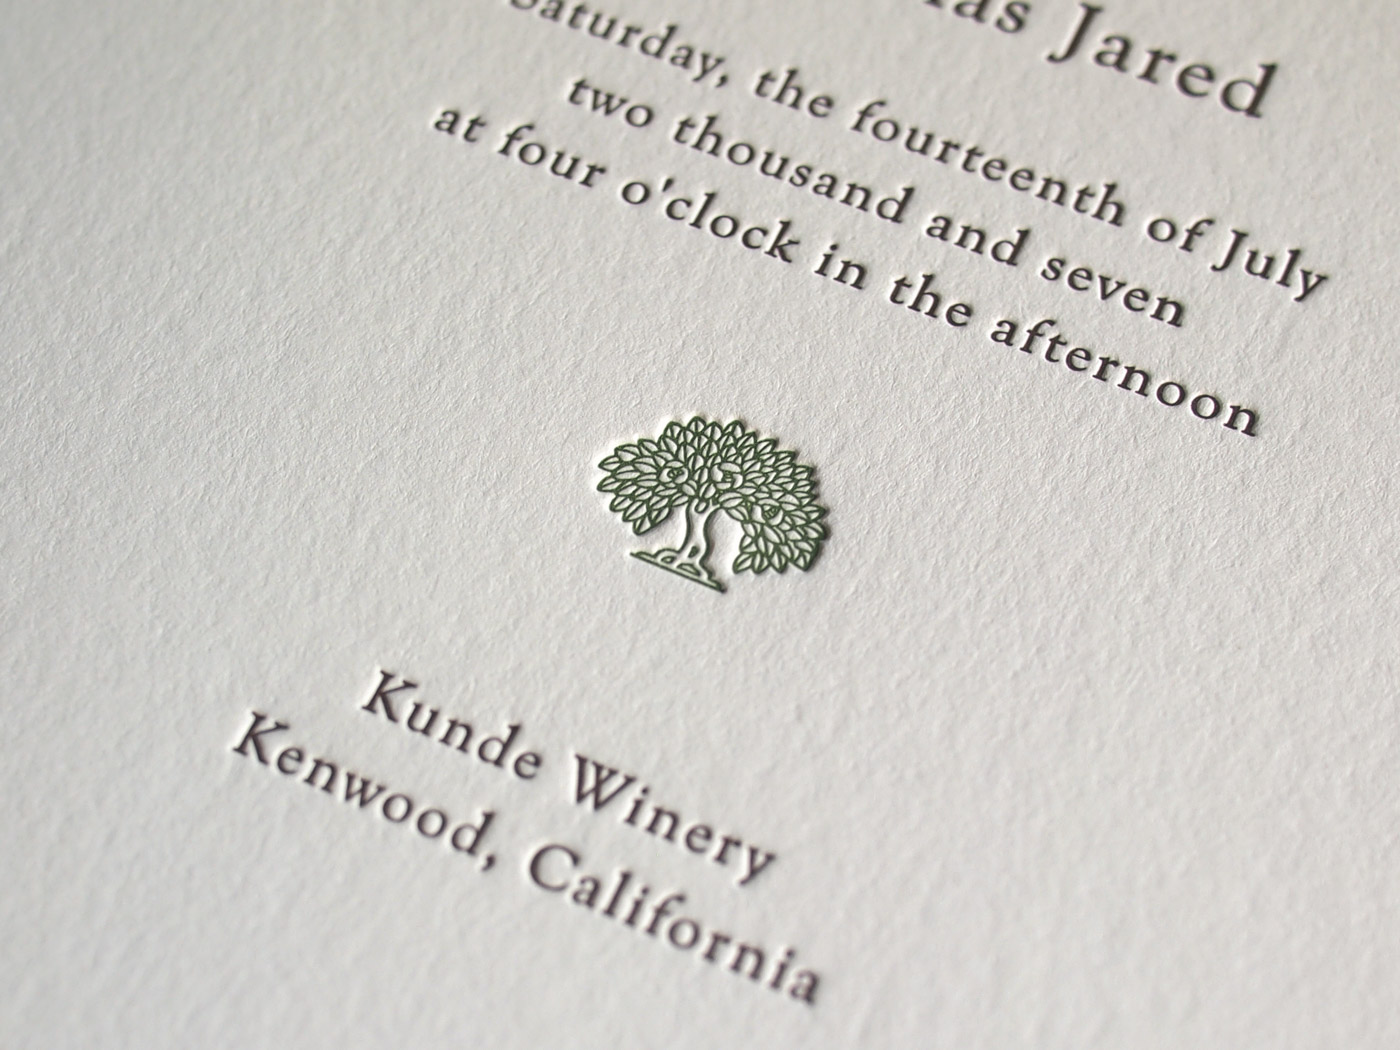 Californian invitation from Parklife Press